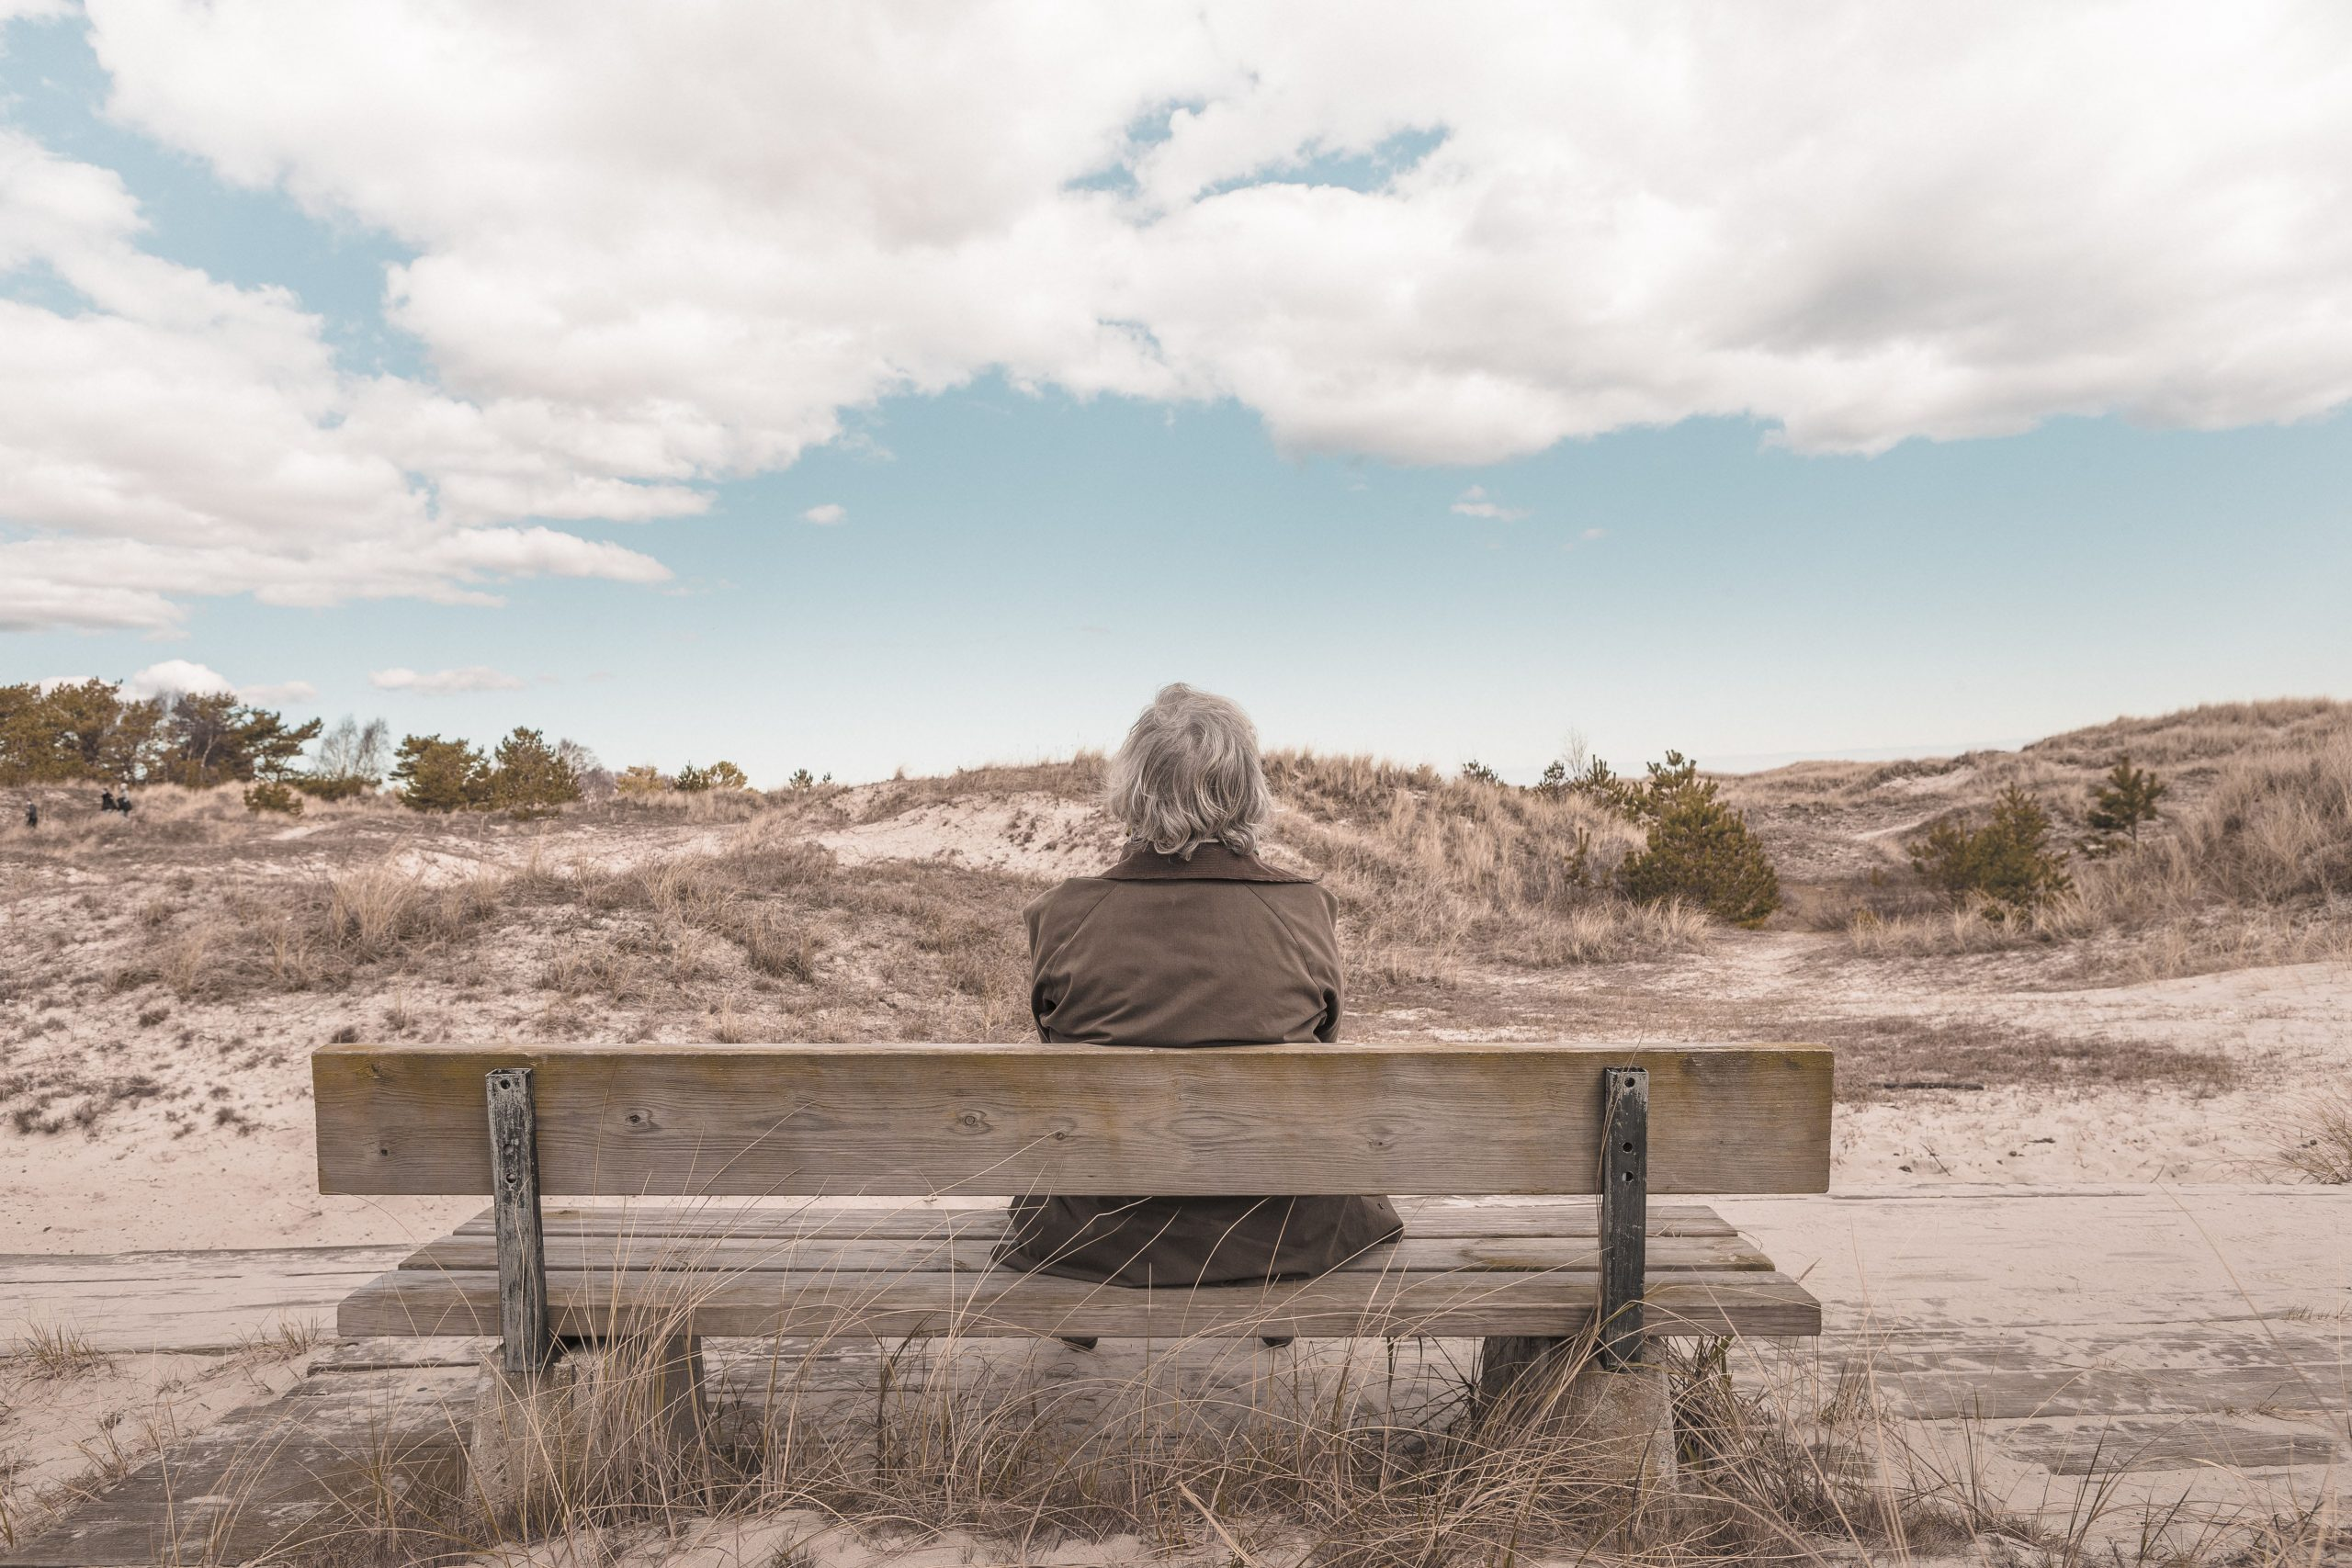 A gray haired person sitting on a bench in a desert taking a break to reignite your creative spark